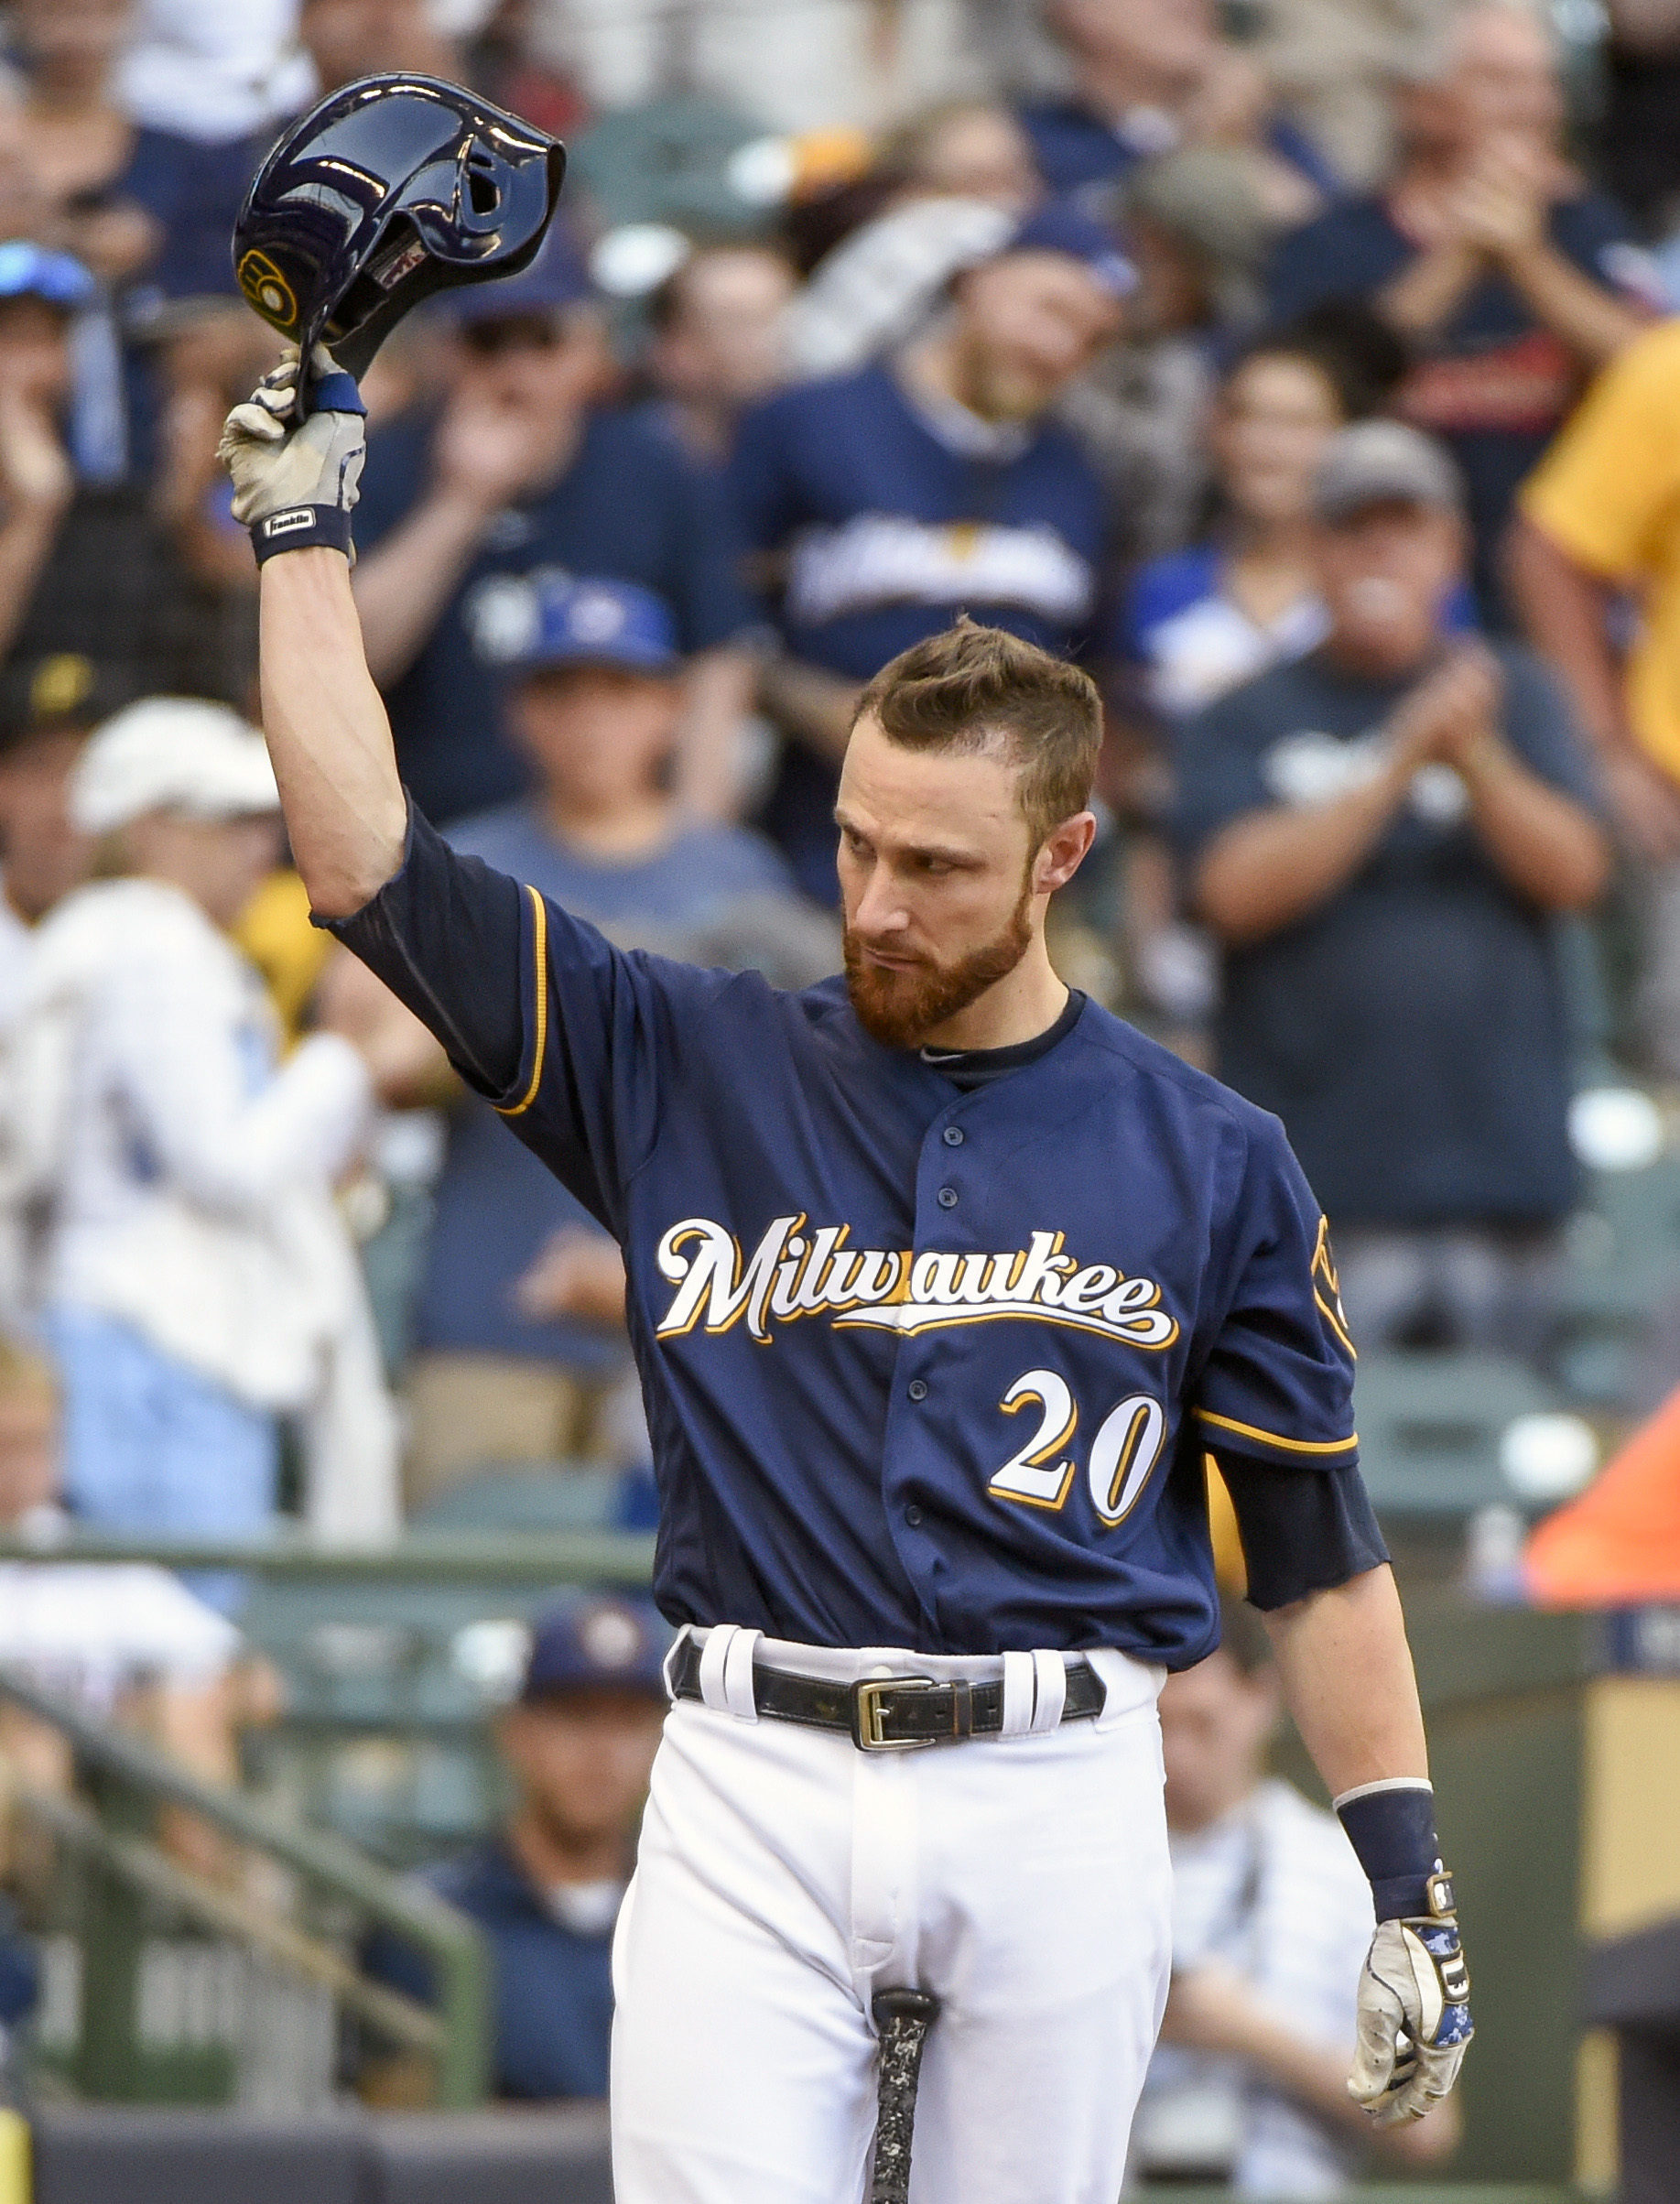 Milwaukee Brewers' Jonathan Lucroy tips his batting helmet after getting a standing ovation from fans while pinch-hitting during the eighth inning of a baseball game Sunday, July 31, 2016, in Milwaukee. Lucroy has blocked his proposed trade to the Clevela